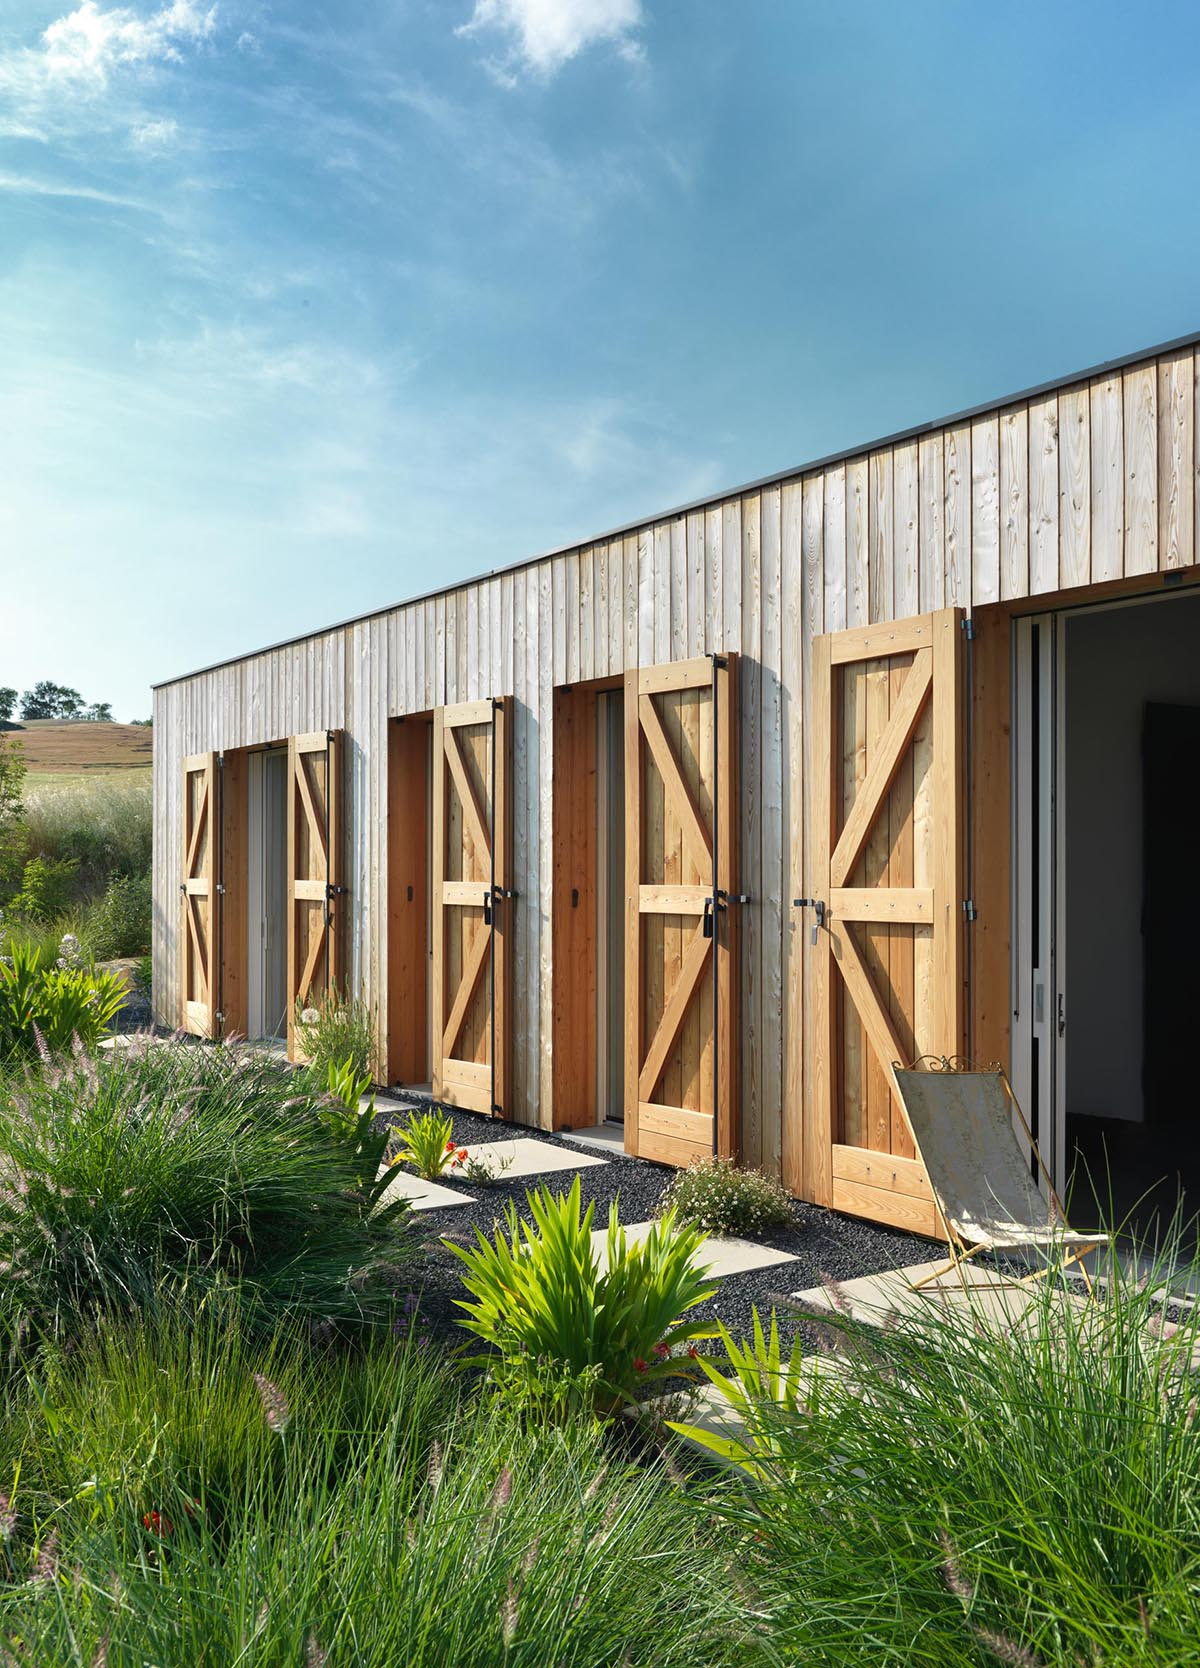 A modern farmhouse with wood shutters to protect the windows and doors.